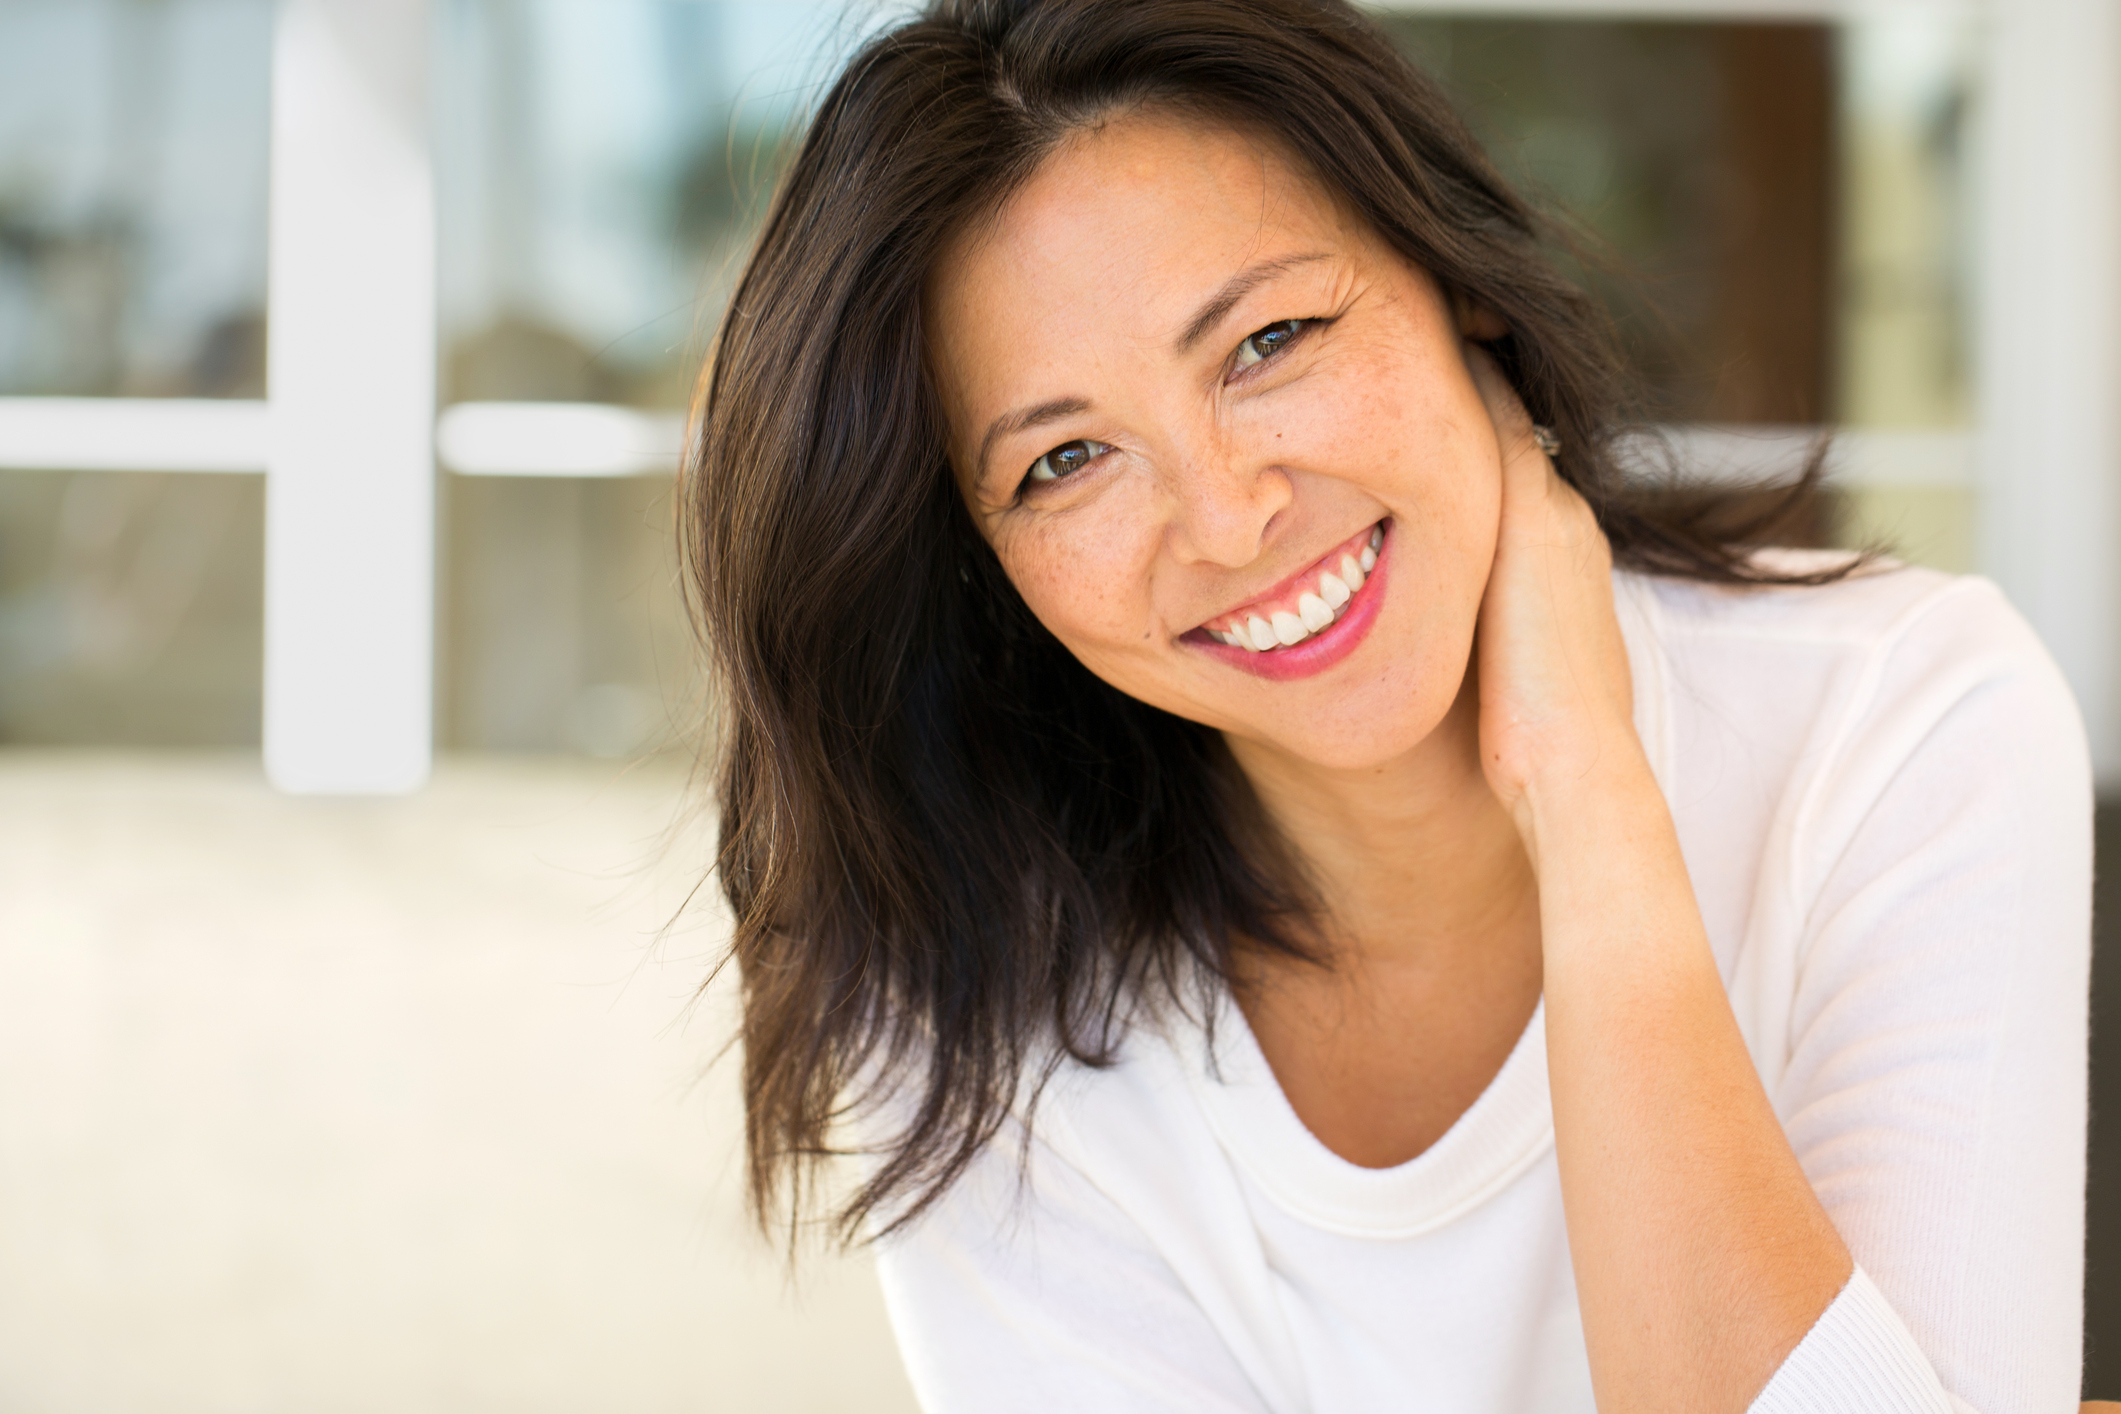 Portrait-of-an-Asian-woman-smiling.-911966802_2125x1416.jpeg